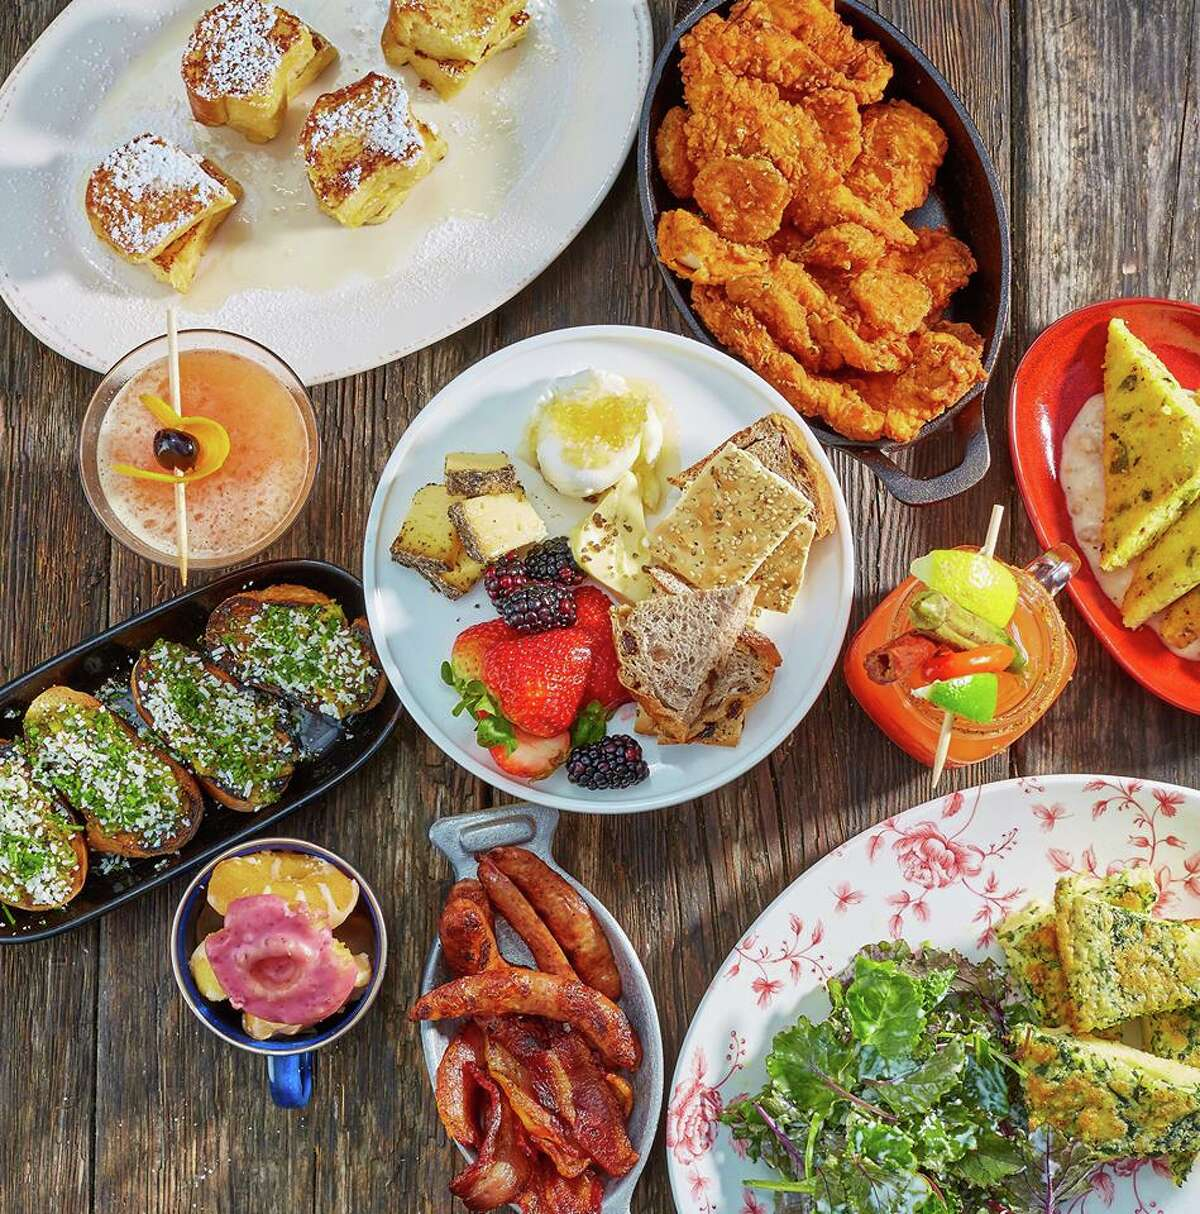 The Rustic Houston  Address: 1836 Polk Street  Brunch hours: 10 a.m. to 3 p.m.  Details: Jake Bush takes to the stage at downtown restaurant-slash-live-music venue, The Rustic, where you can load up at the family-style brunch deemed